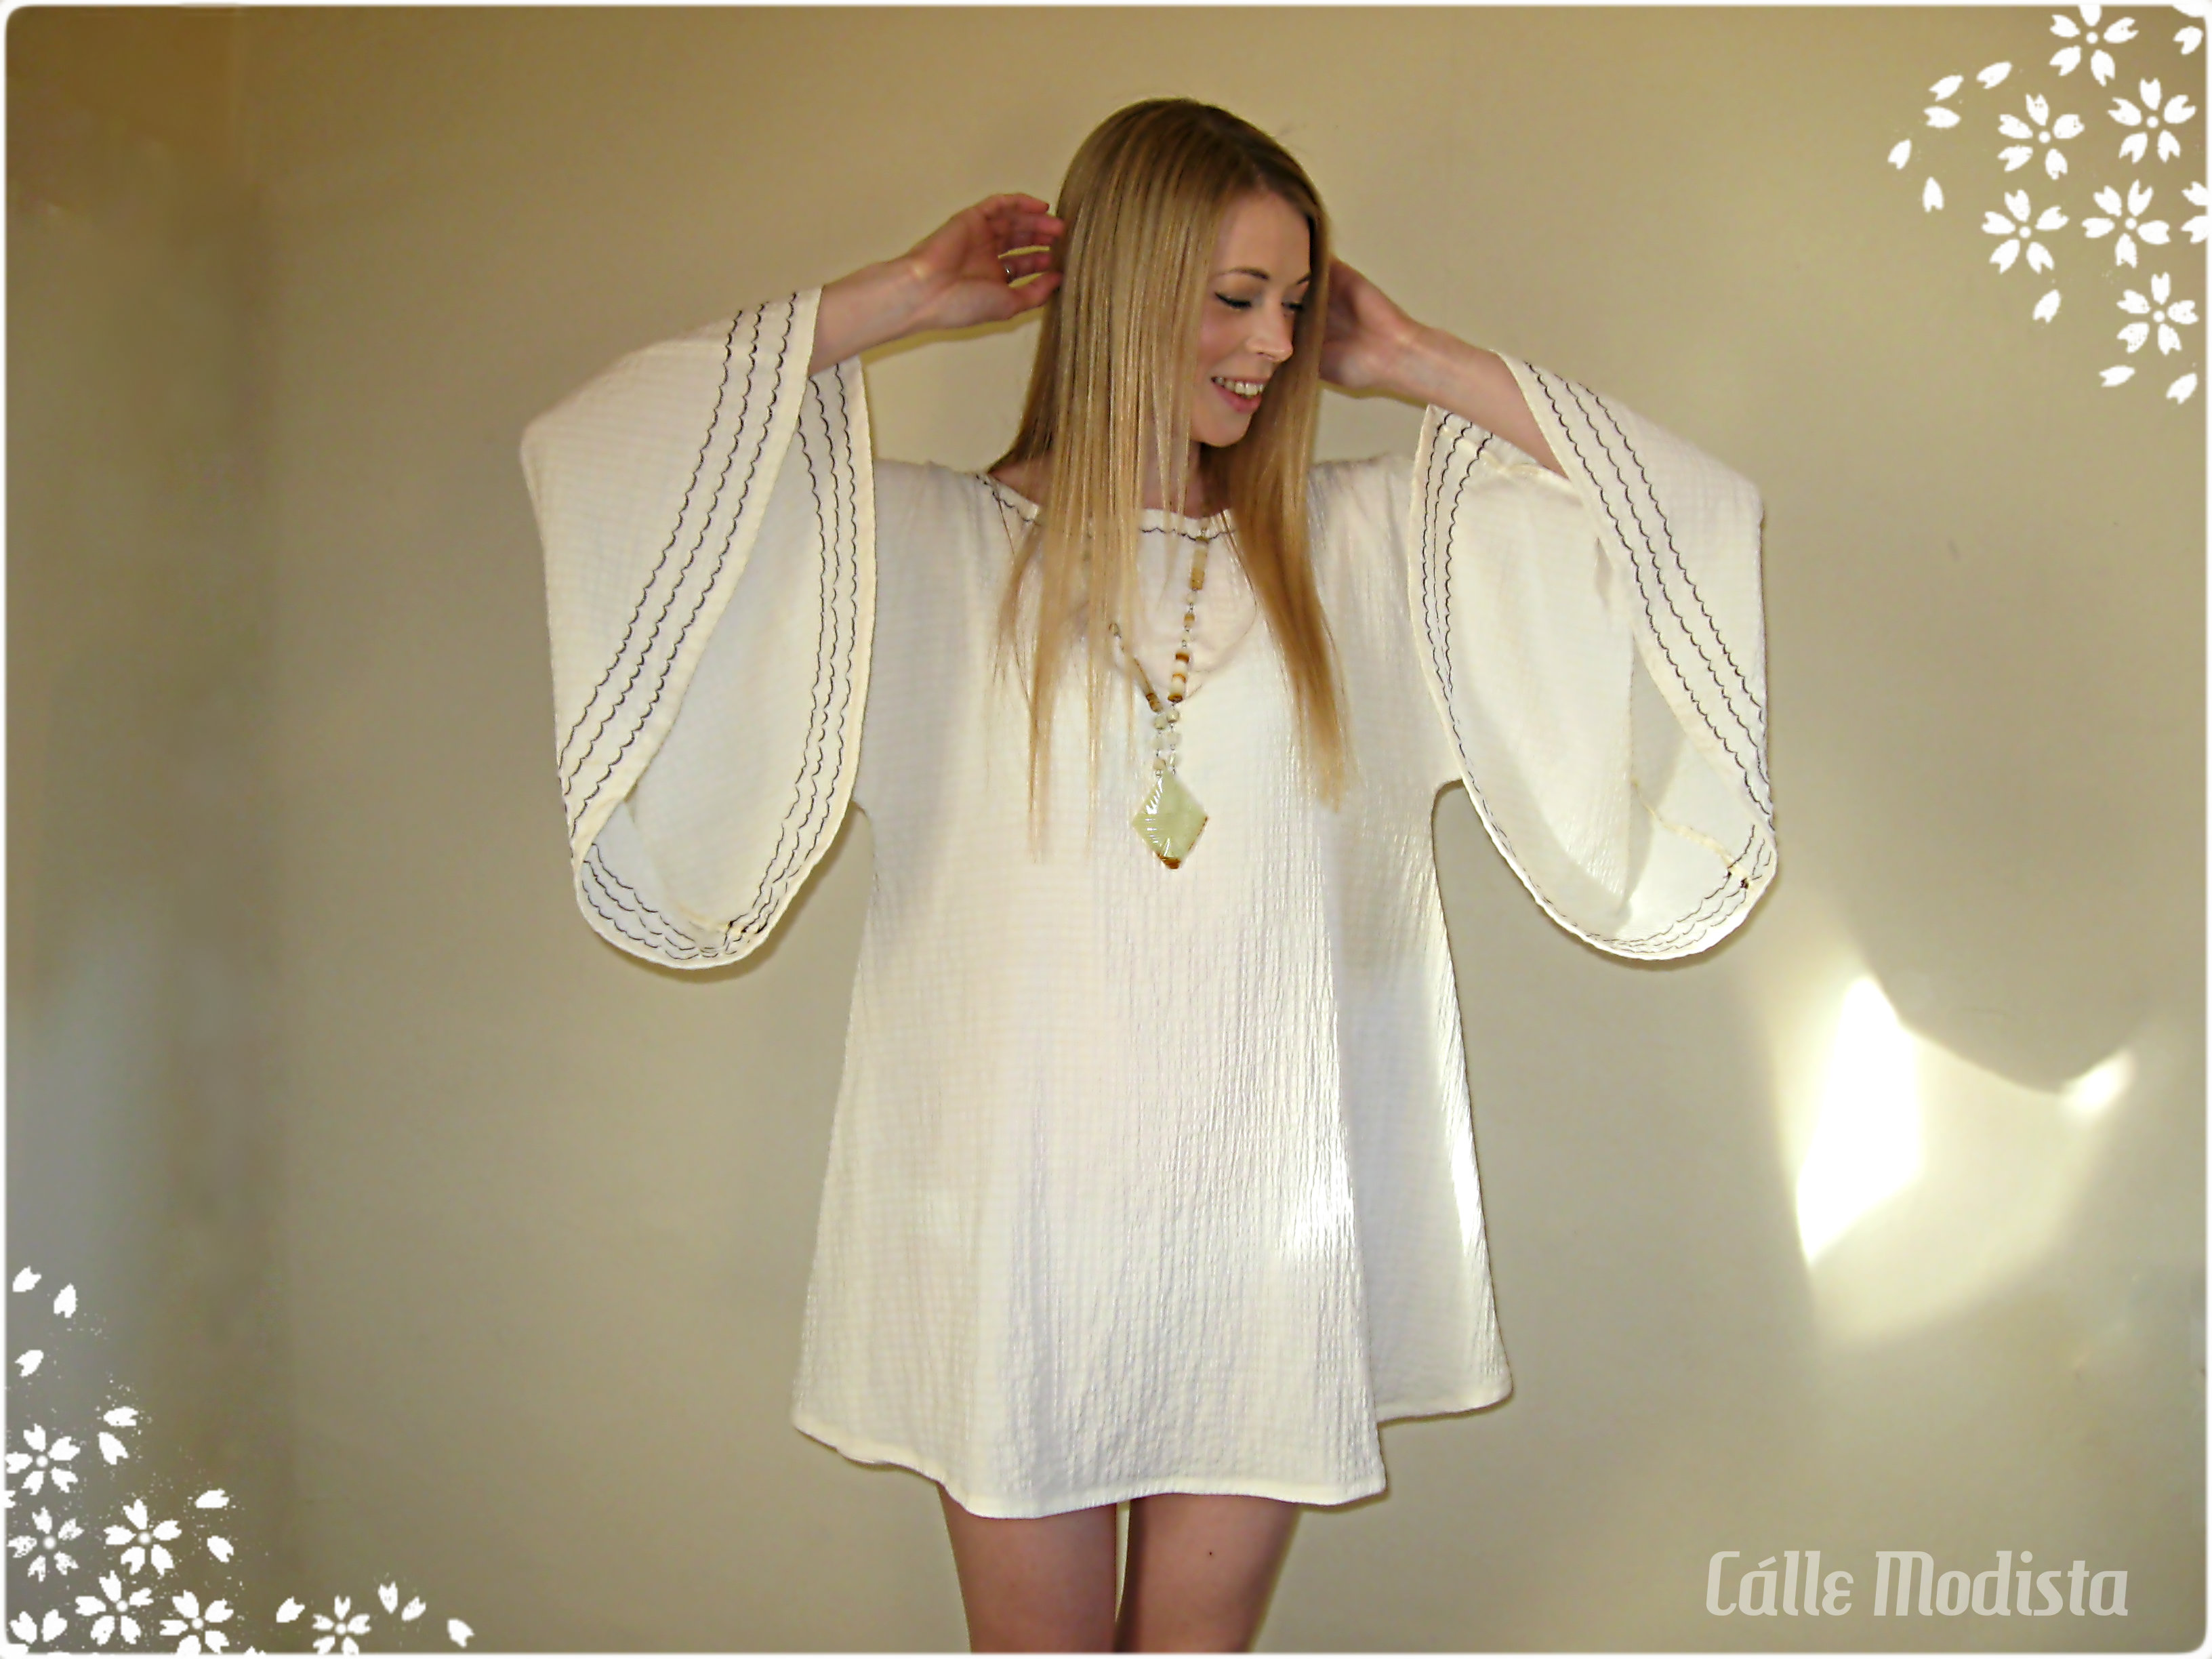 60s Angel Dress by Cálle Modista